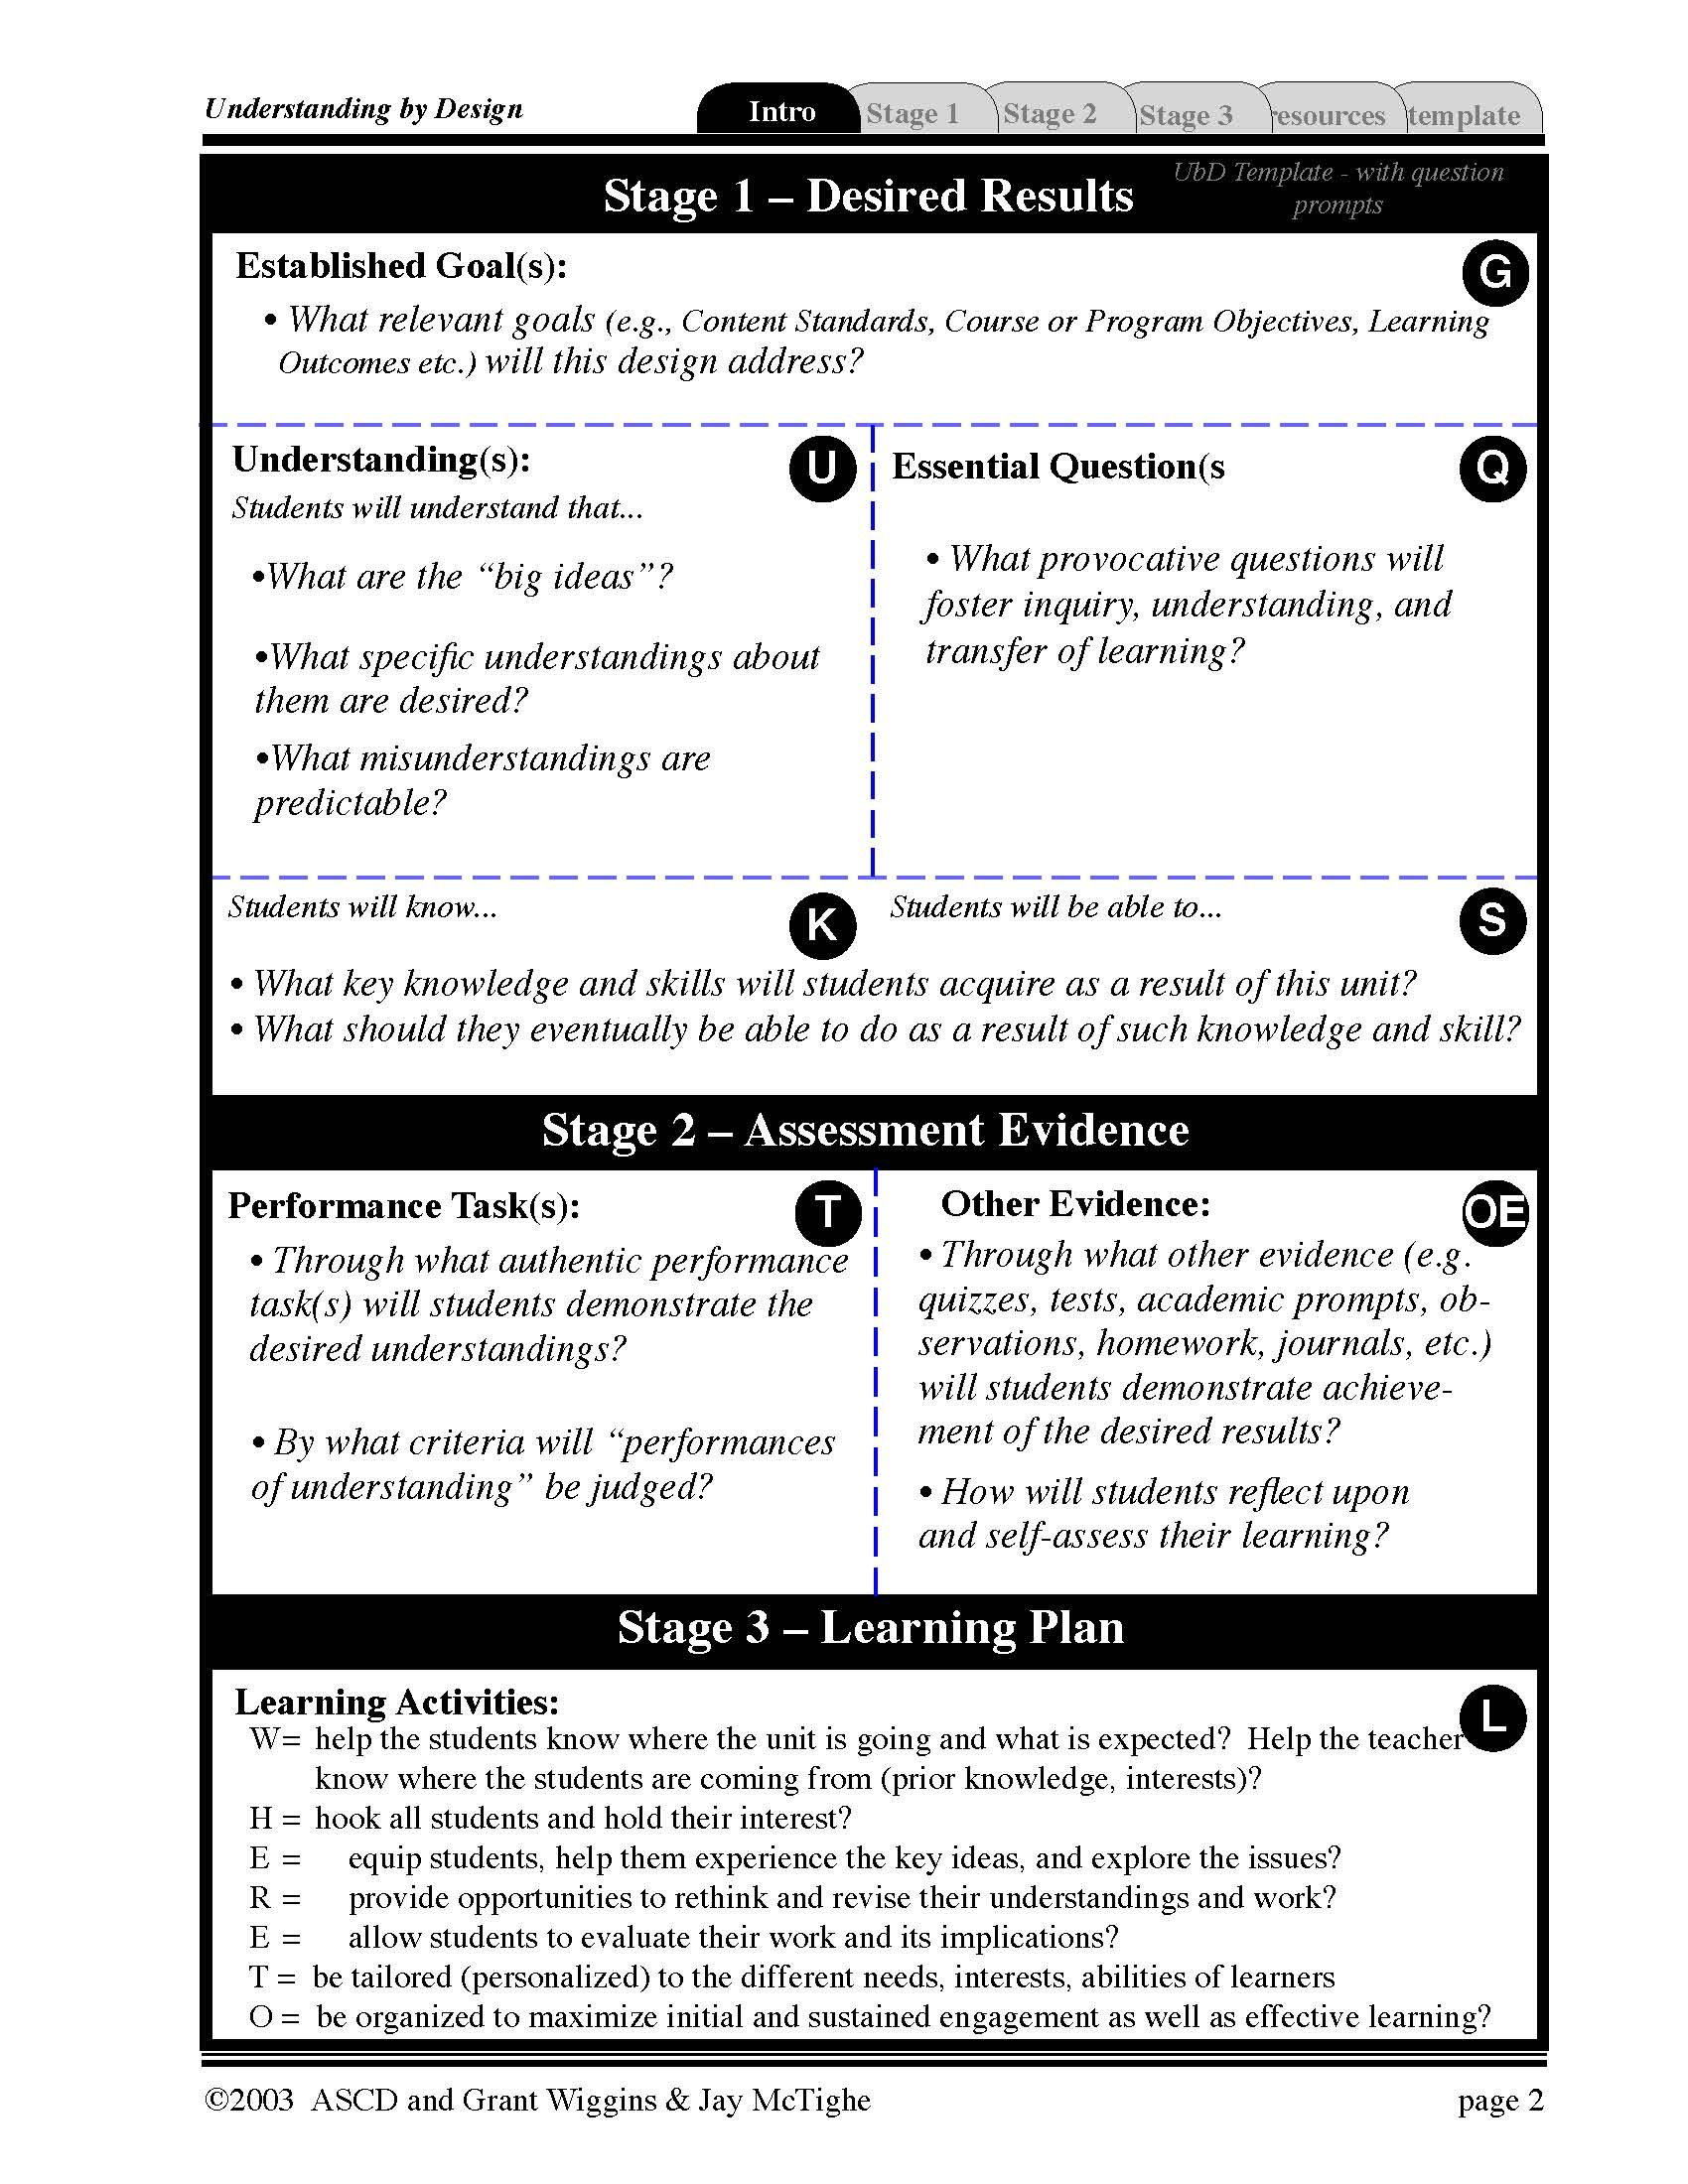 UbD Plan | Ed Theory and Pedogogy | Pinterest